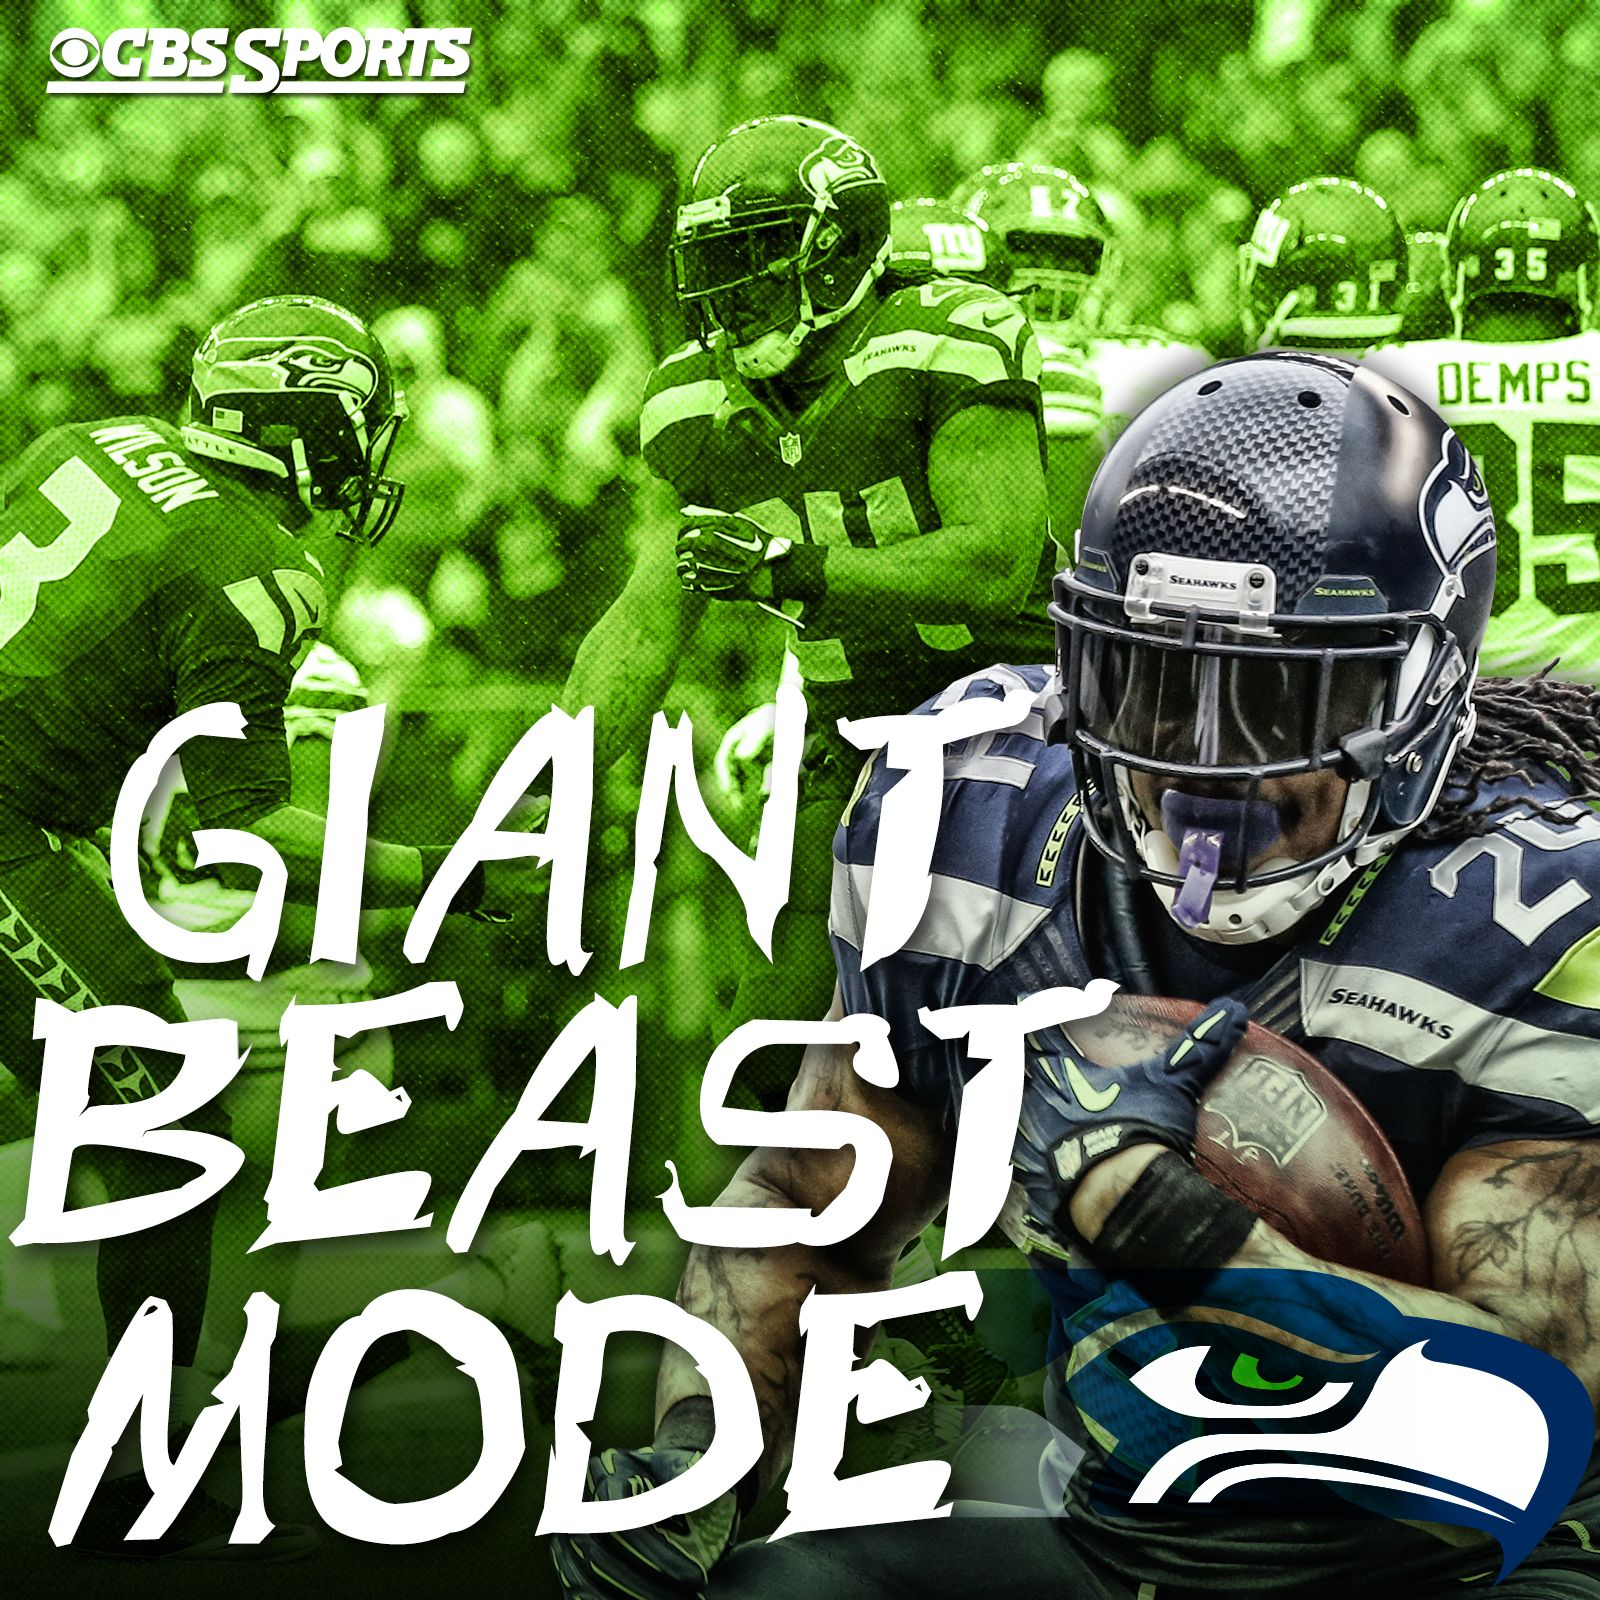 You can't stop The Beast! Cbs sports, Football love, Nfl